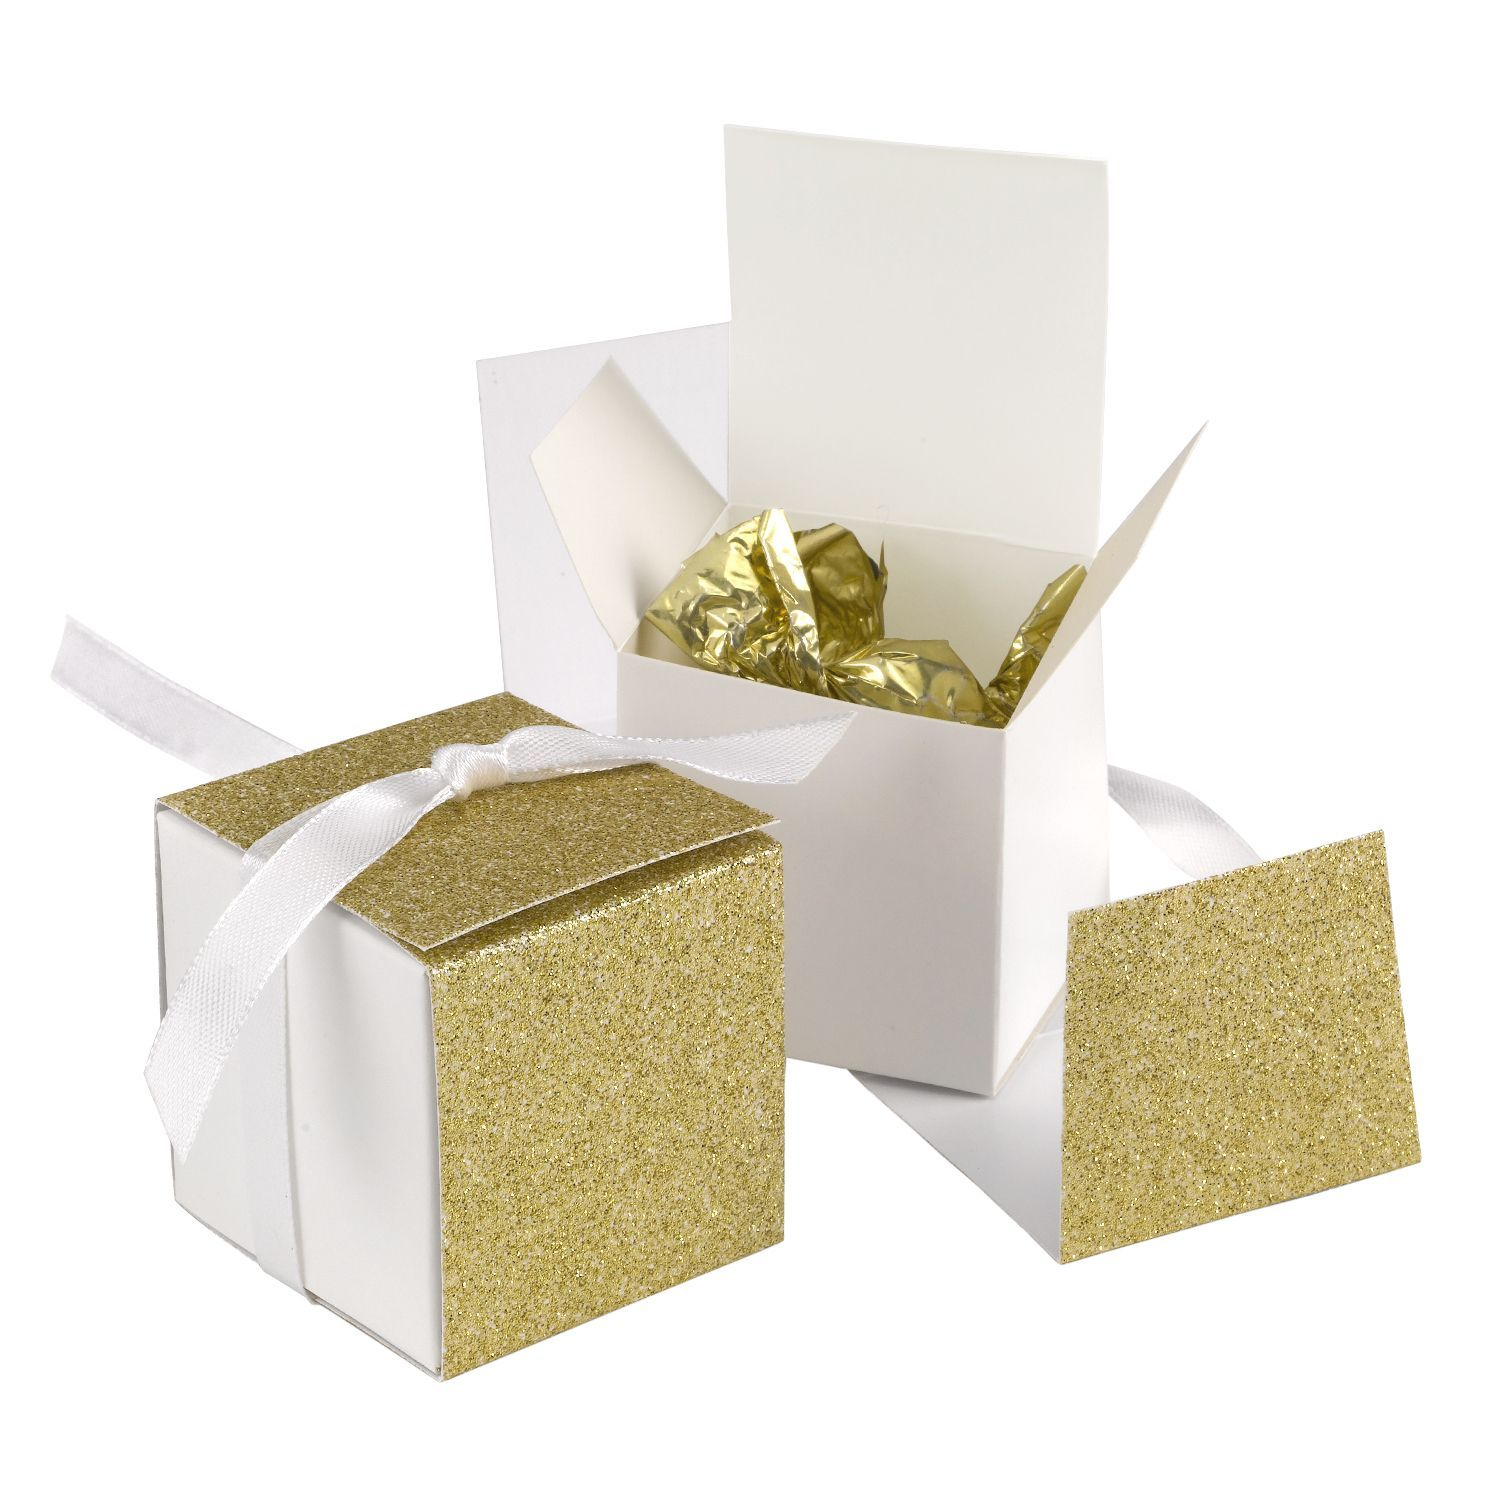 Fingerhut - Hortense B Hewitt - Gliter Wrap Favor Box - Gold ...